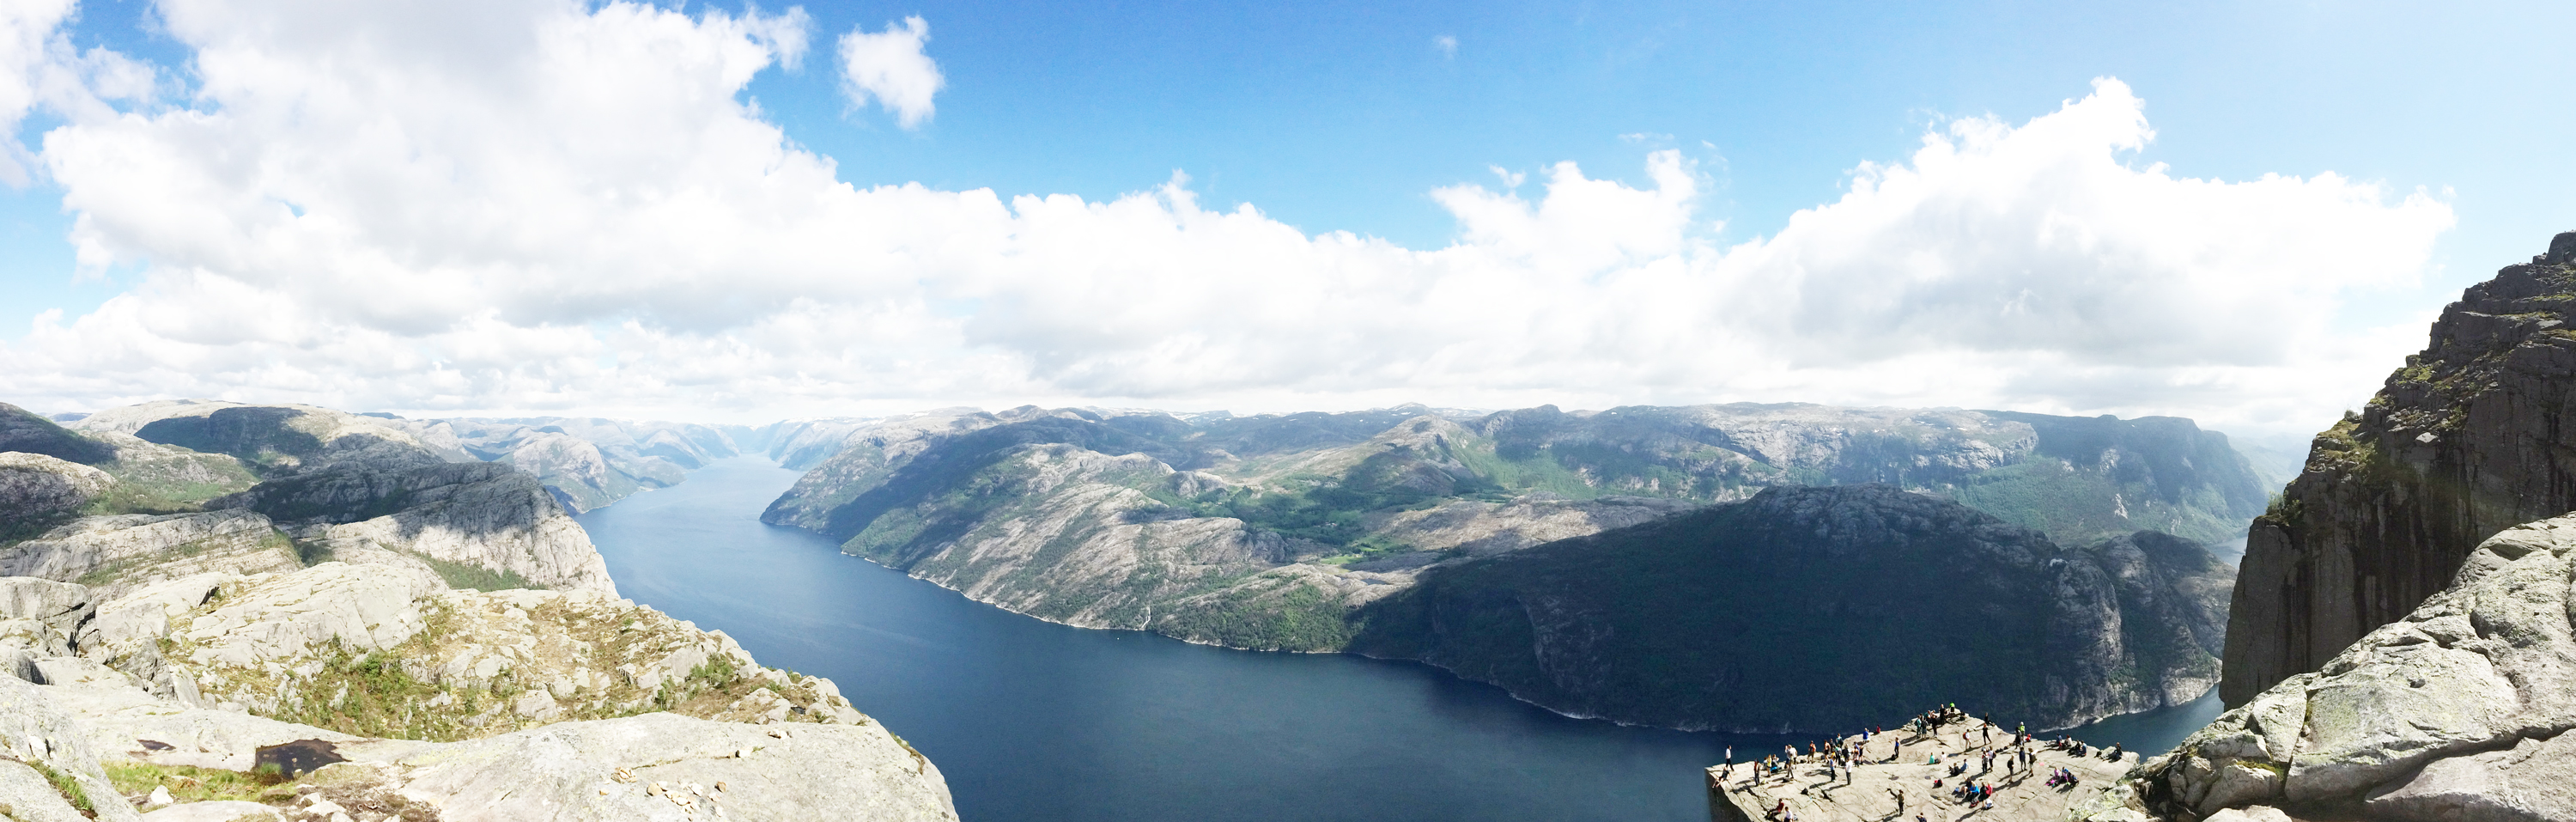 norway-pulpitrock-pano